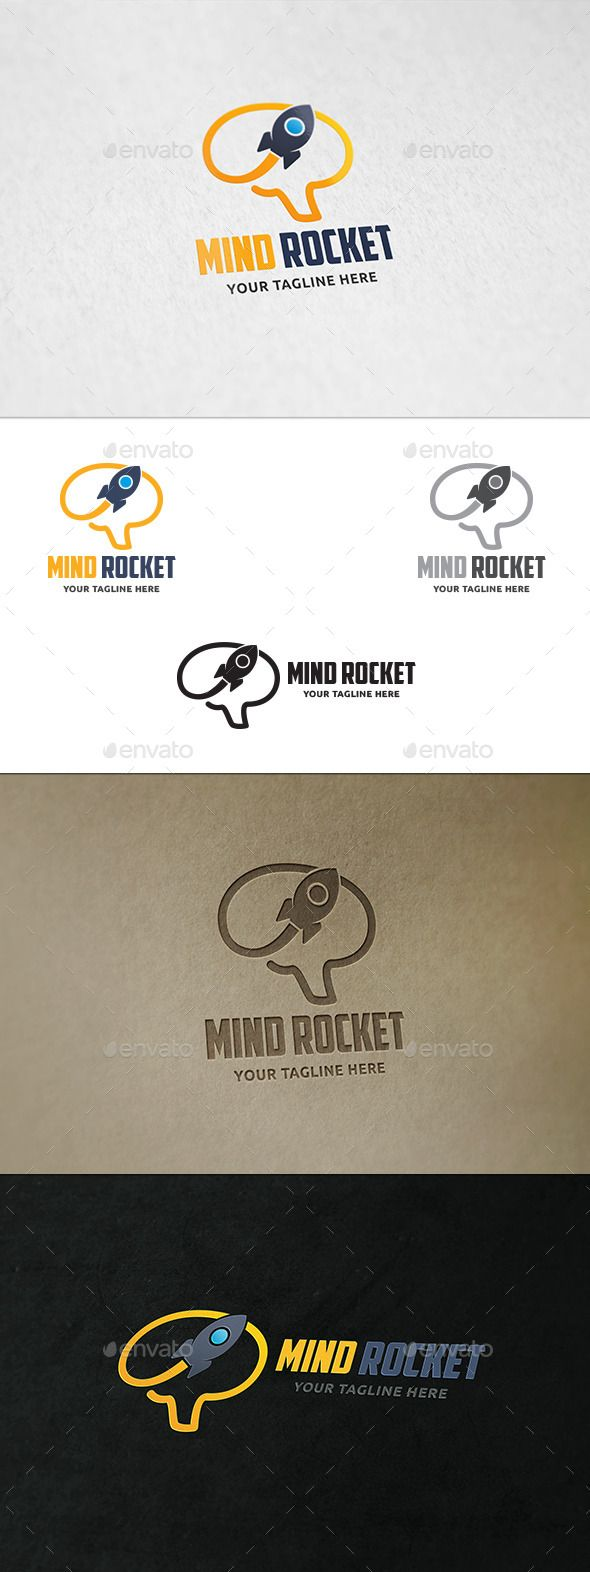 Mind Rocket - Logo Template Vector EPS, AI. Download here: http://graphicriver.net/item/mind-rocket-logo-template/11776088?ref=ksioks